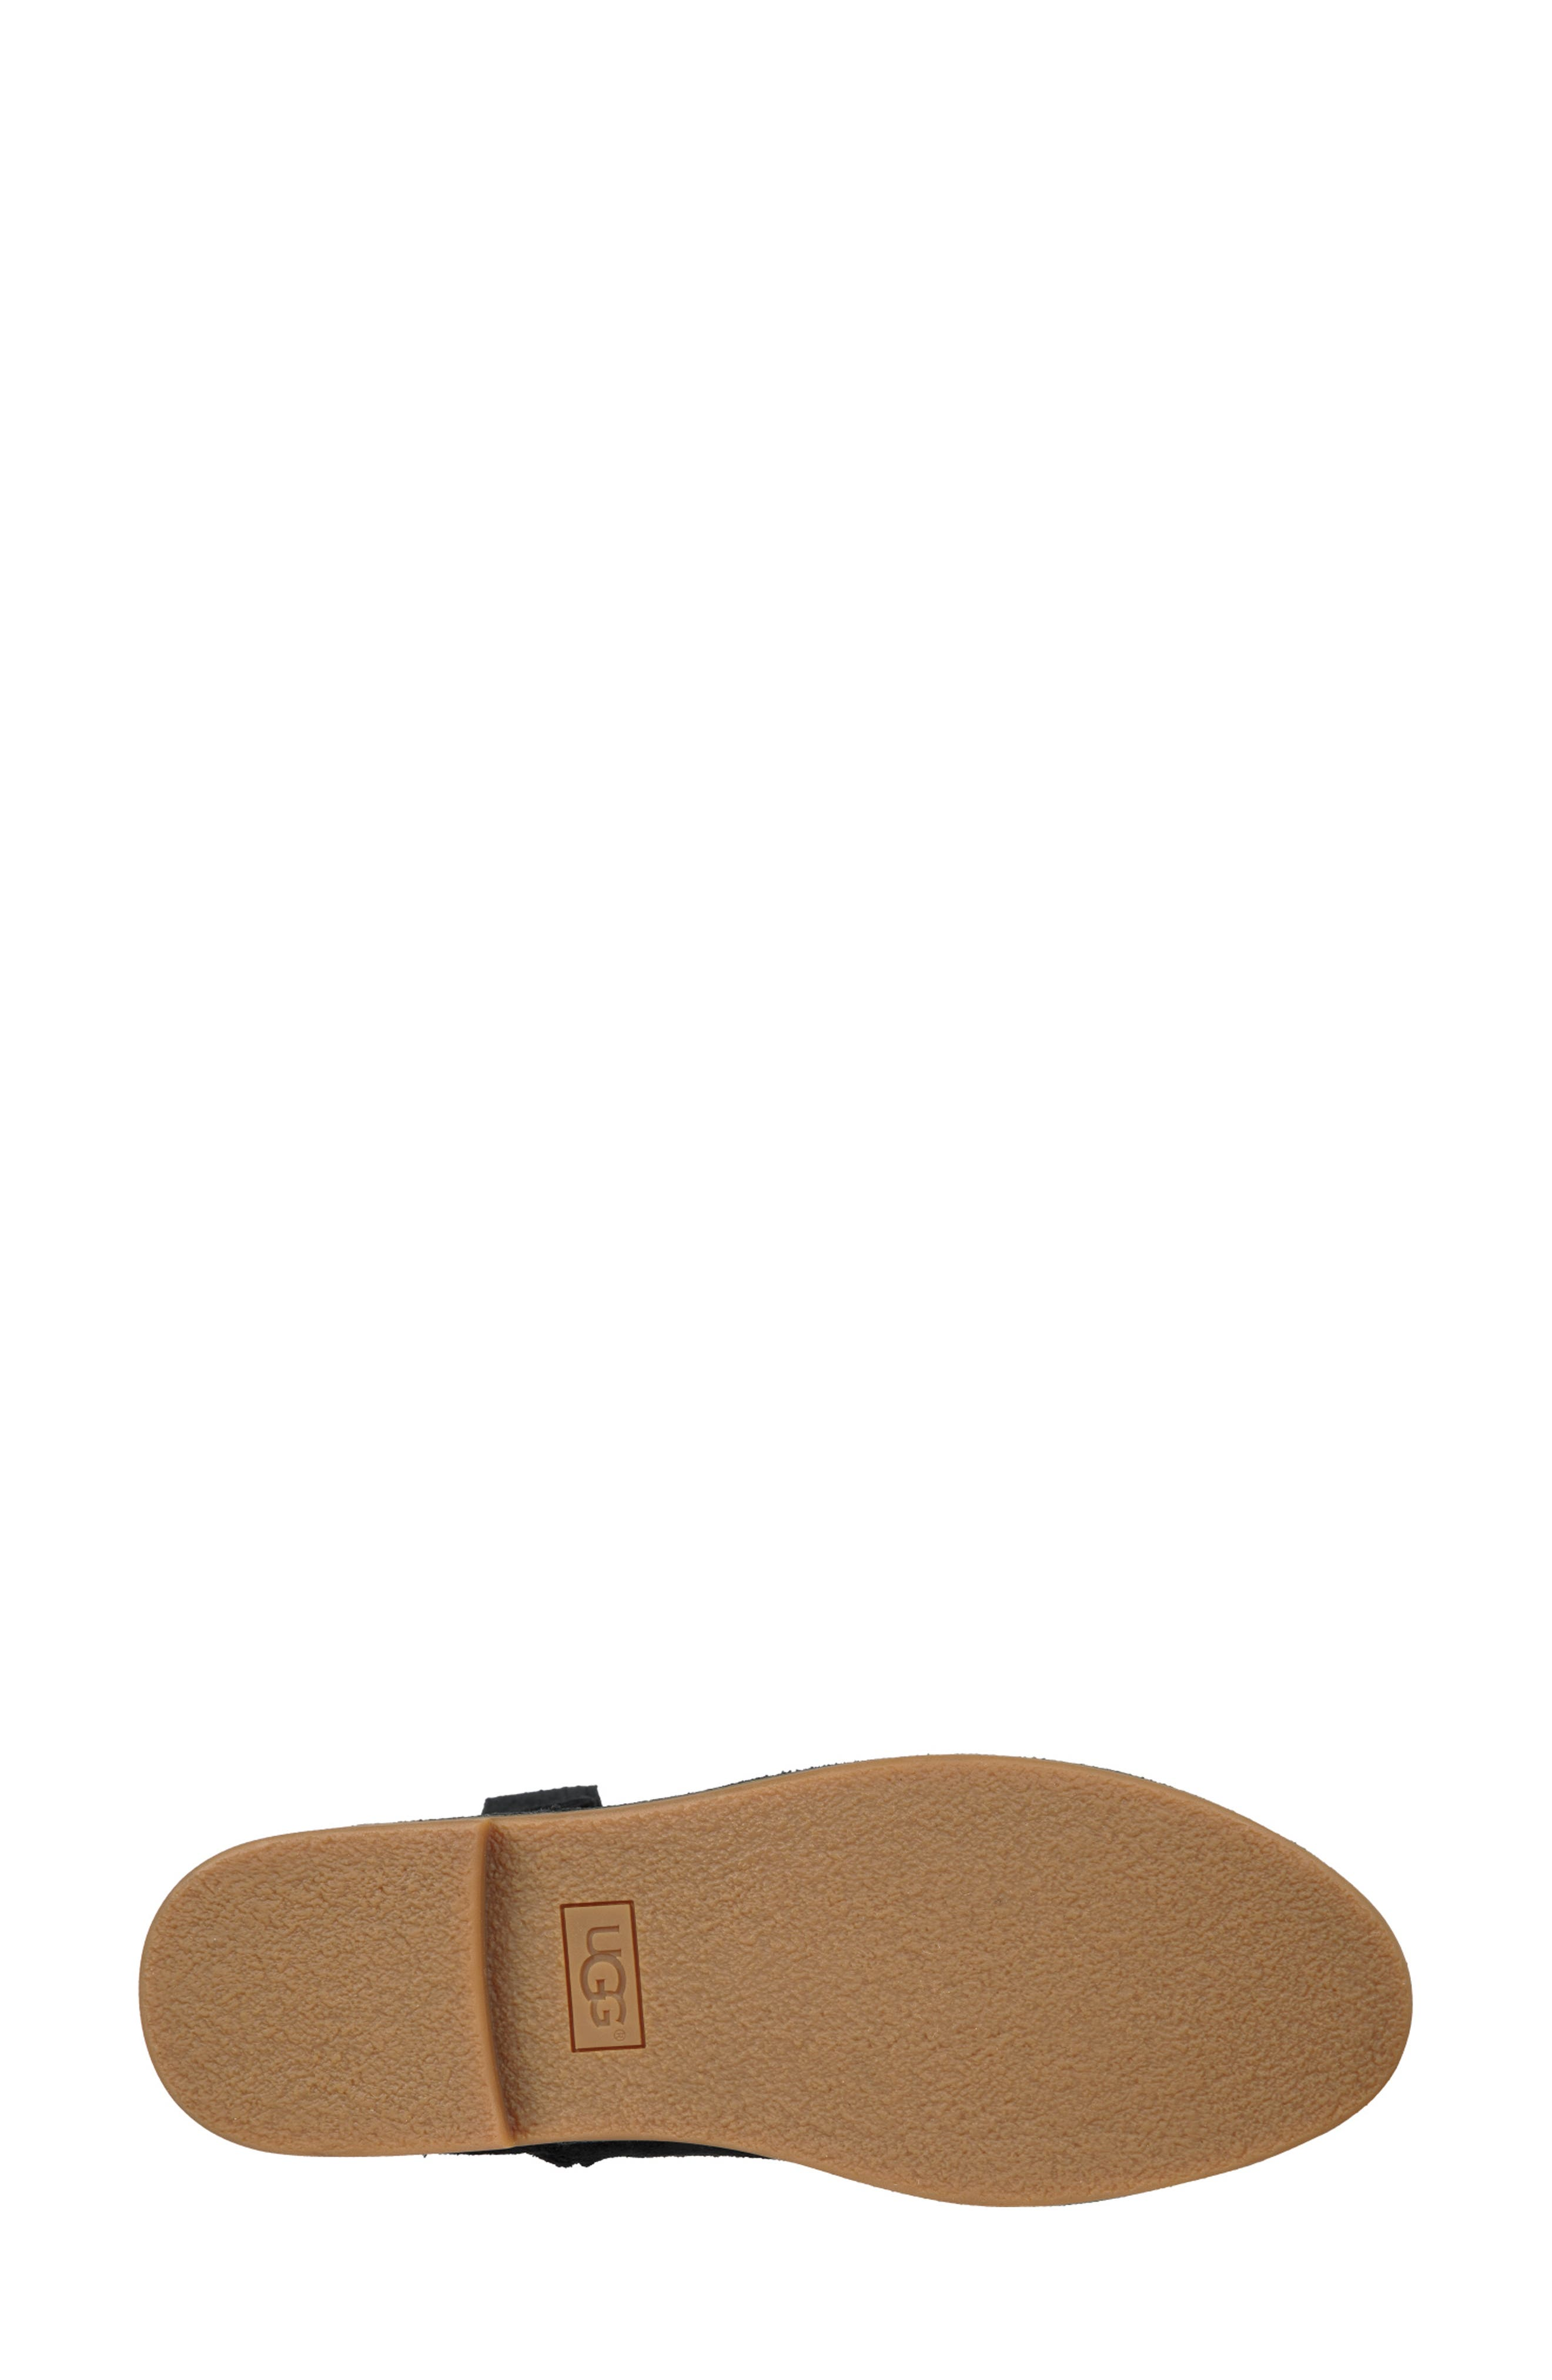 UGG<SUP>®</SUP>, Catica Boot, Alternate thumbnail 5, color, BLACK SUEDE